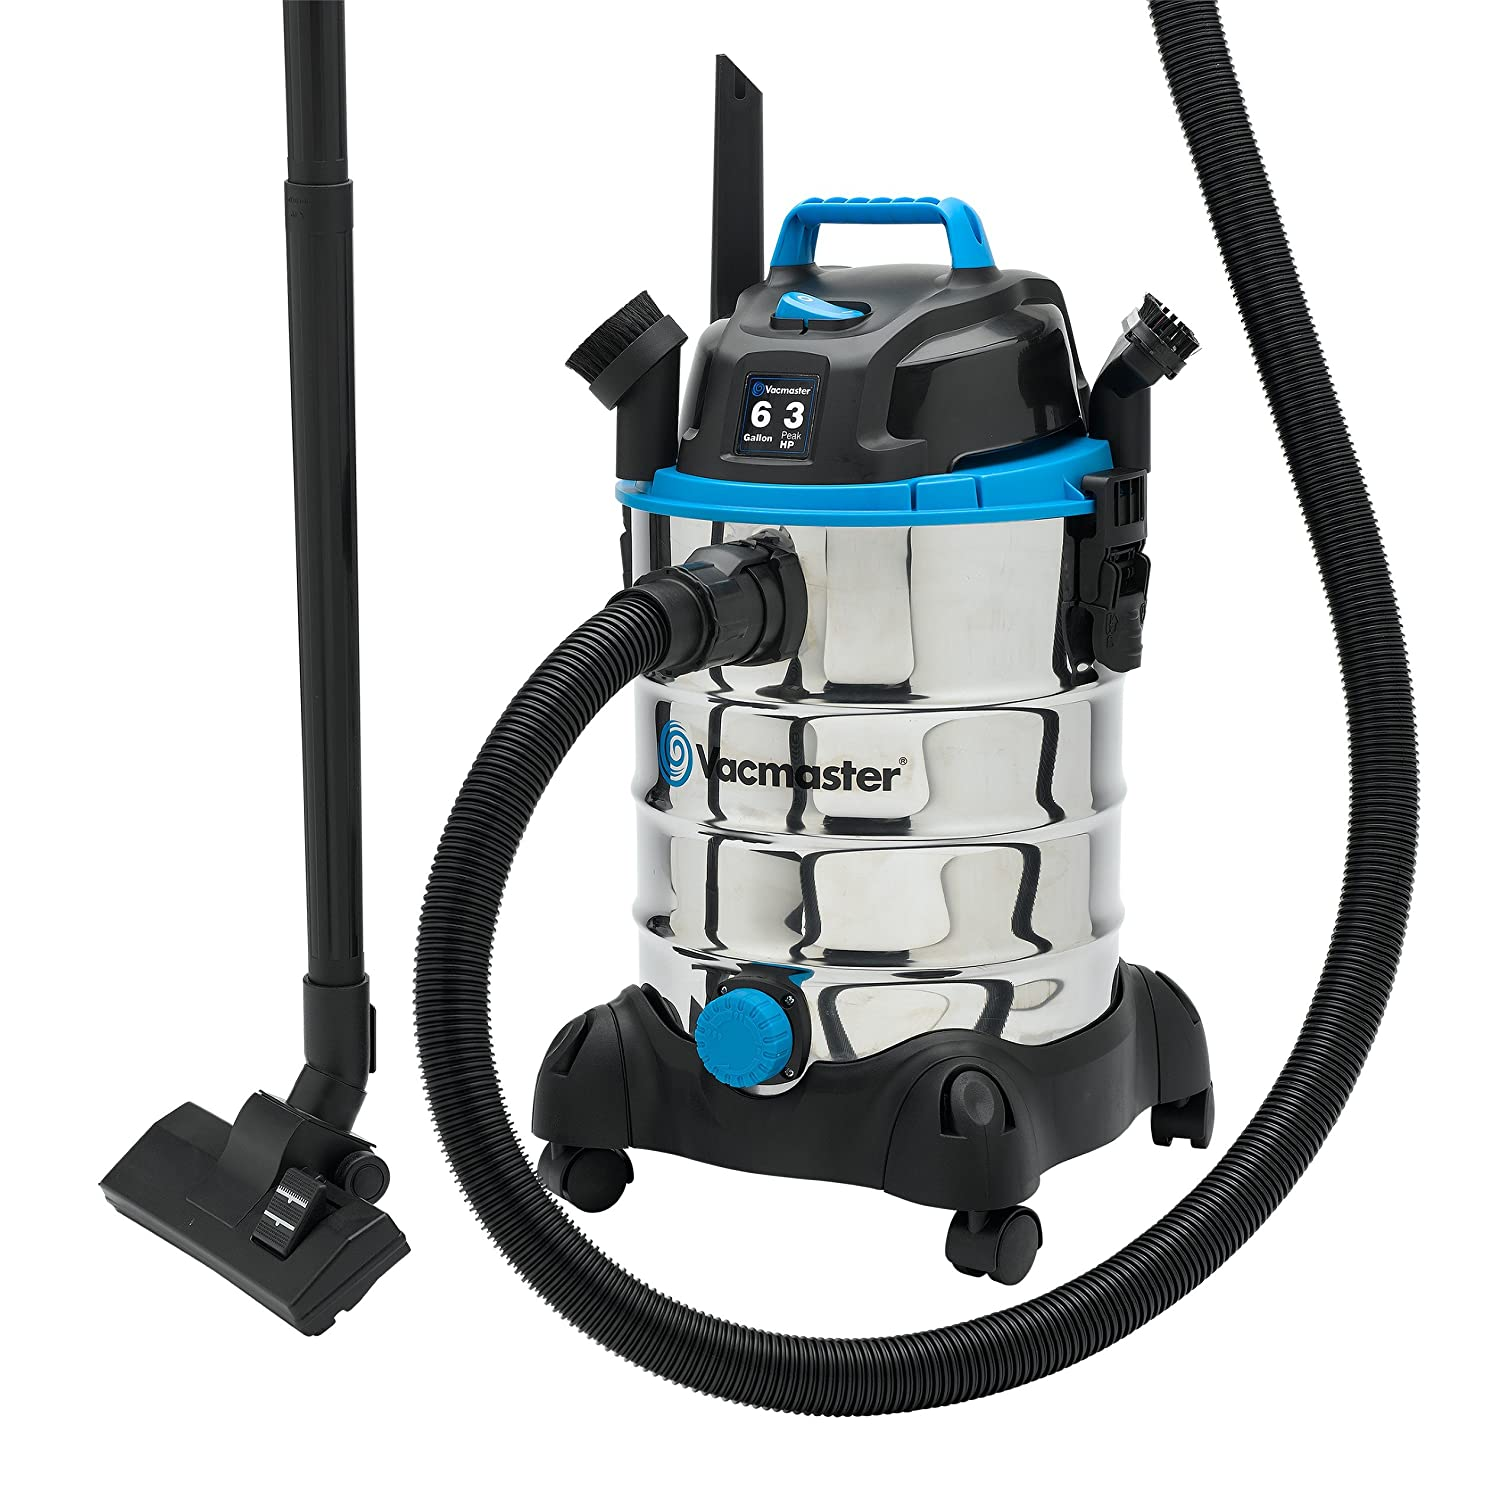 Vacmaster 2.5 Gallon Portable Wet//Dry Vacuum 2 Peak HP VP205